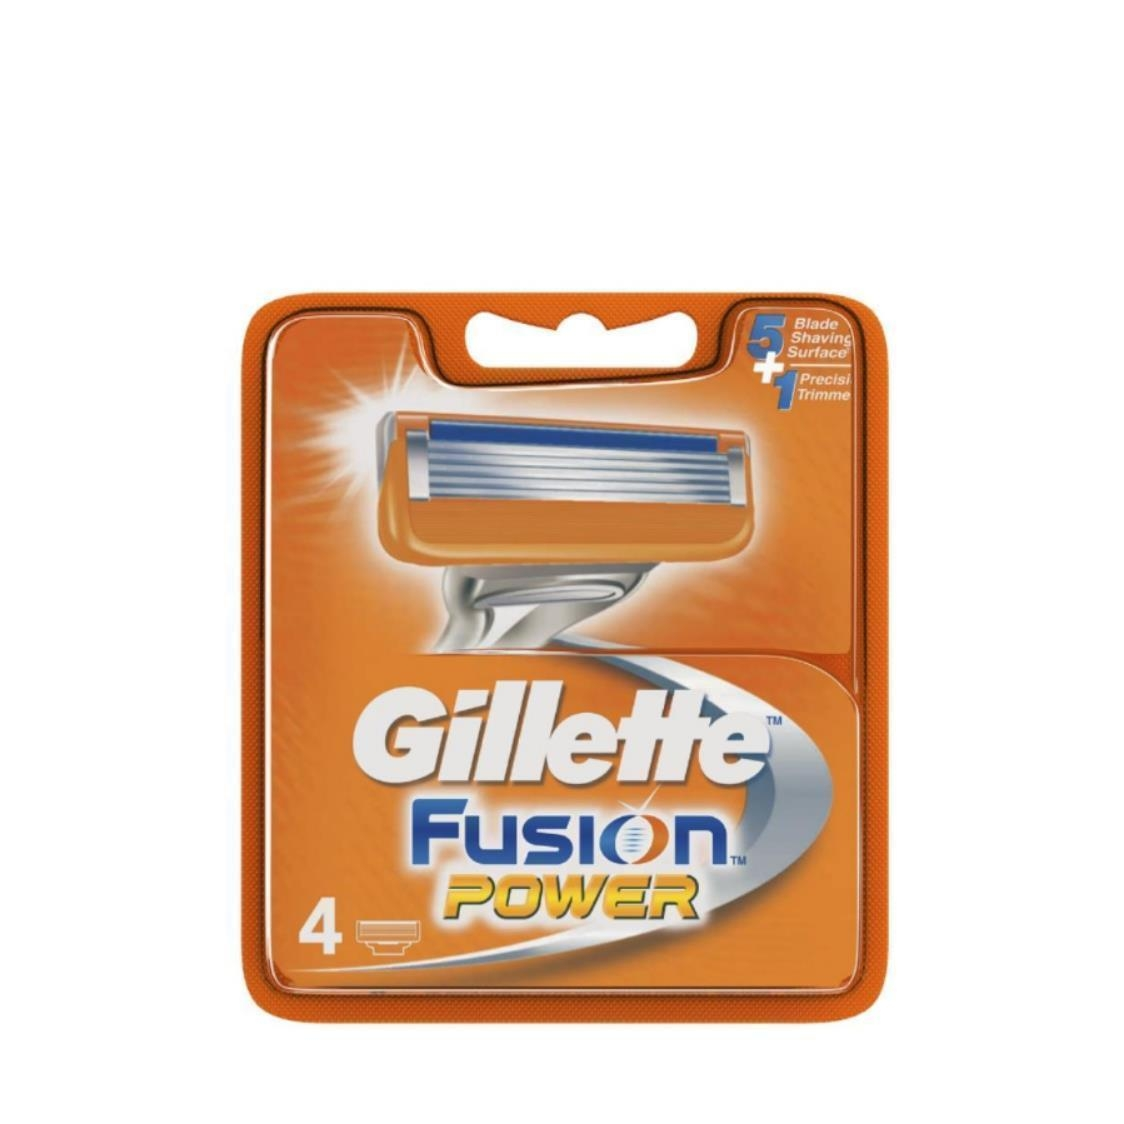 Fusion Power Mens Razor Blade Refills 4 Count